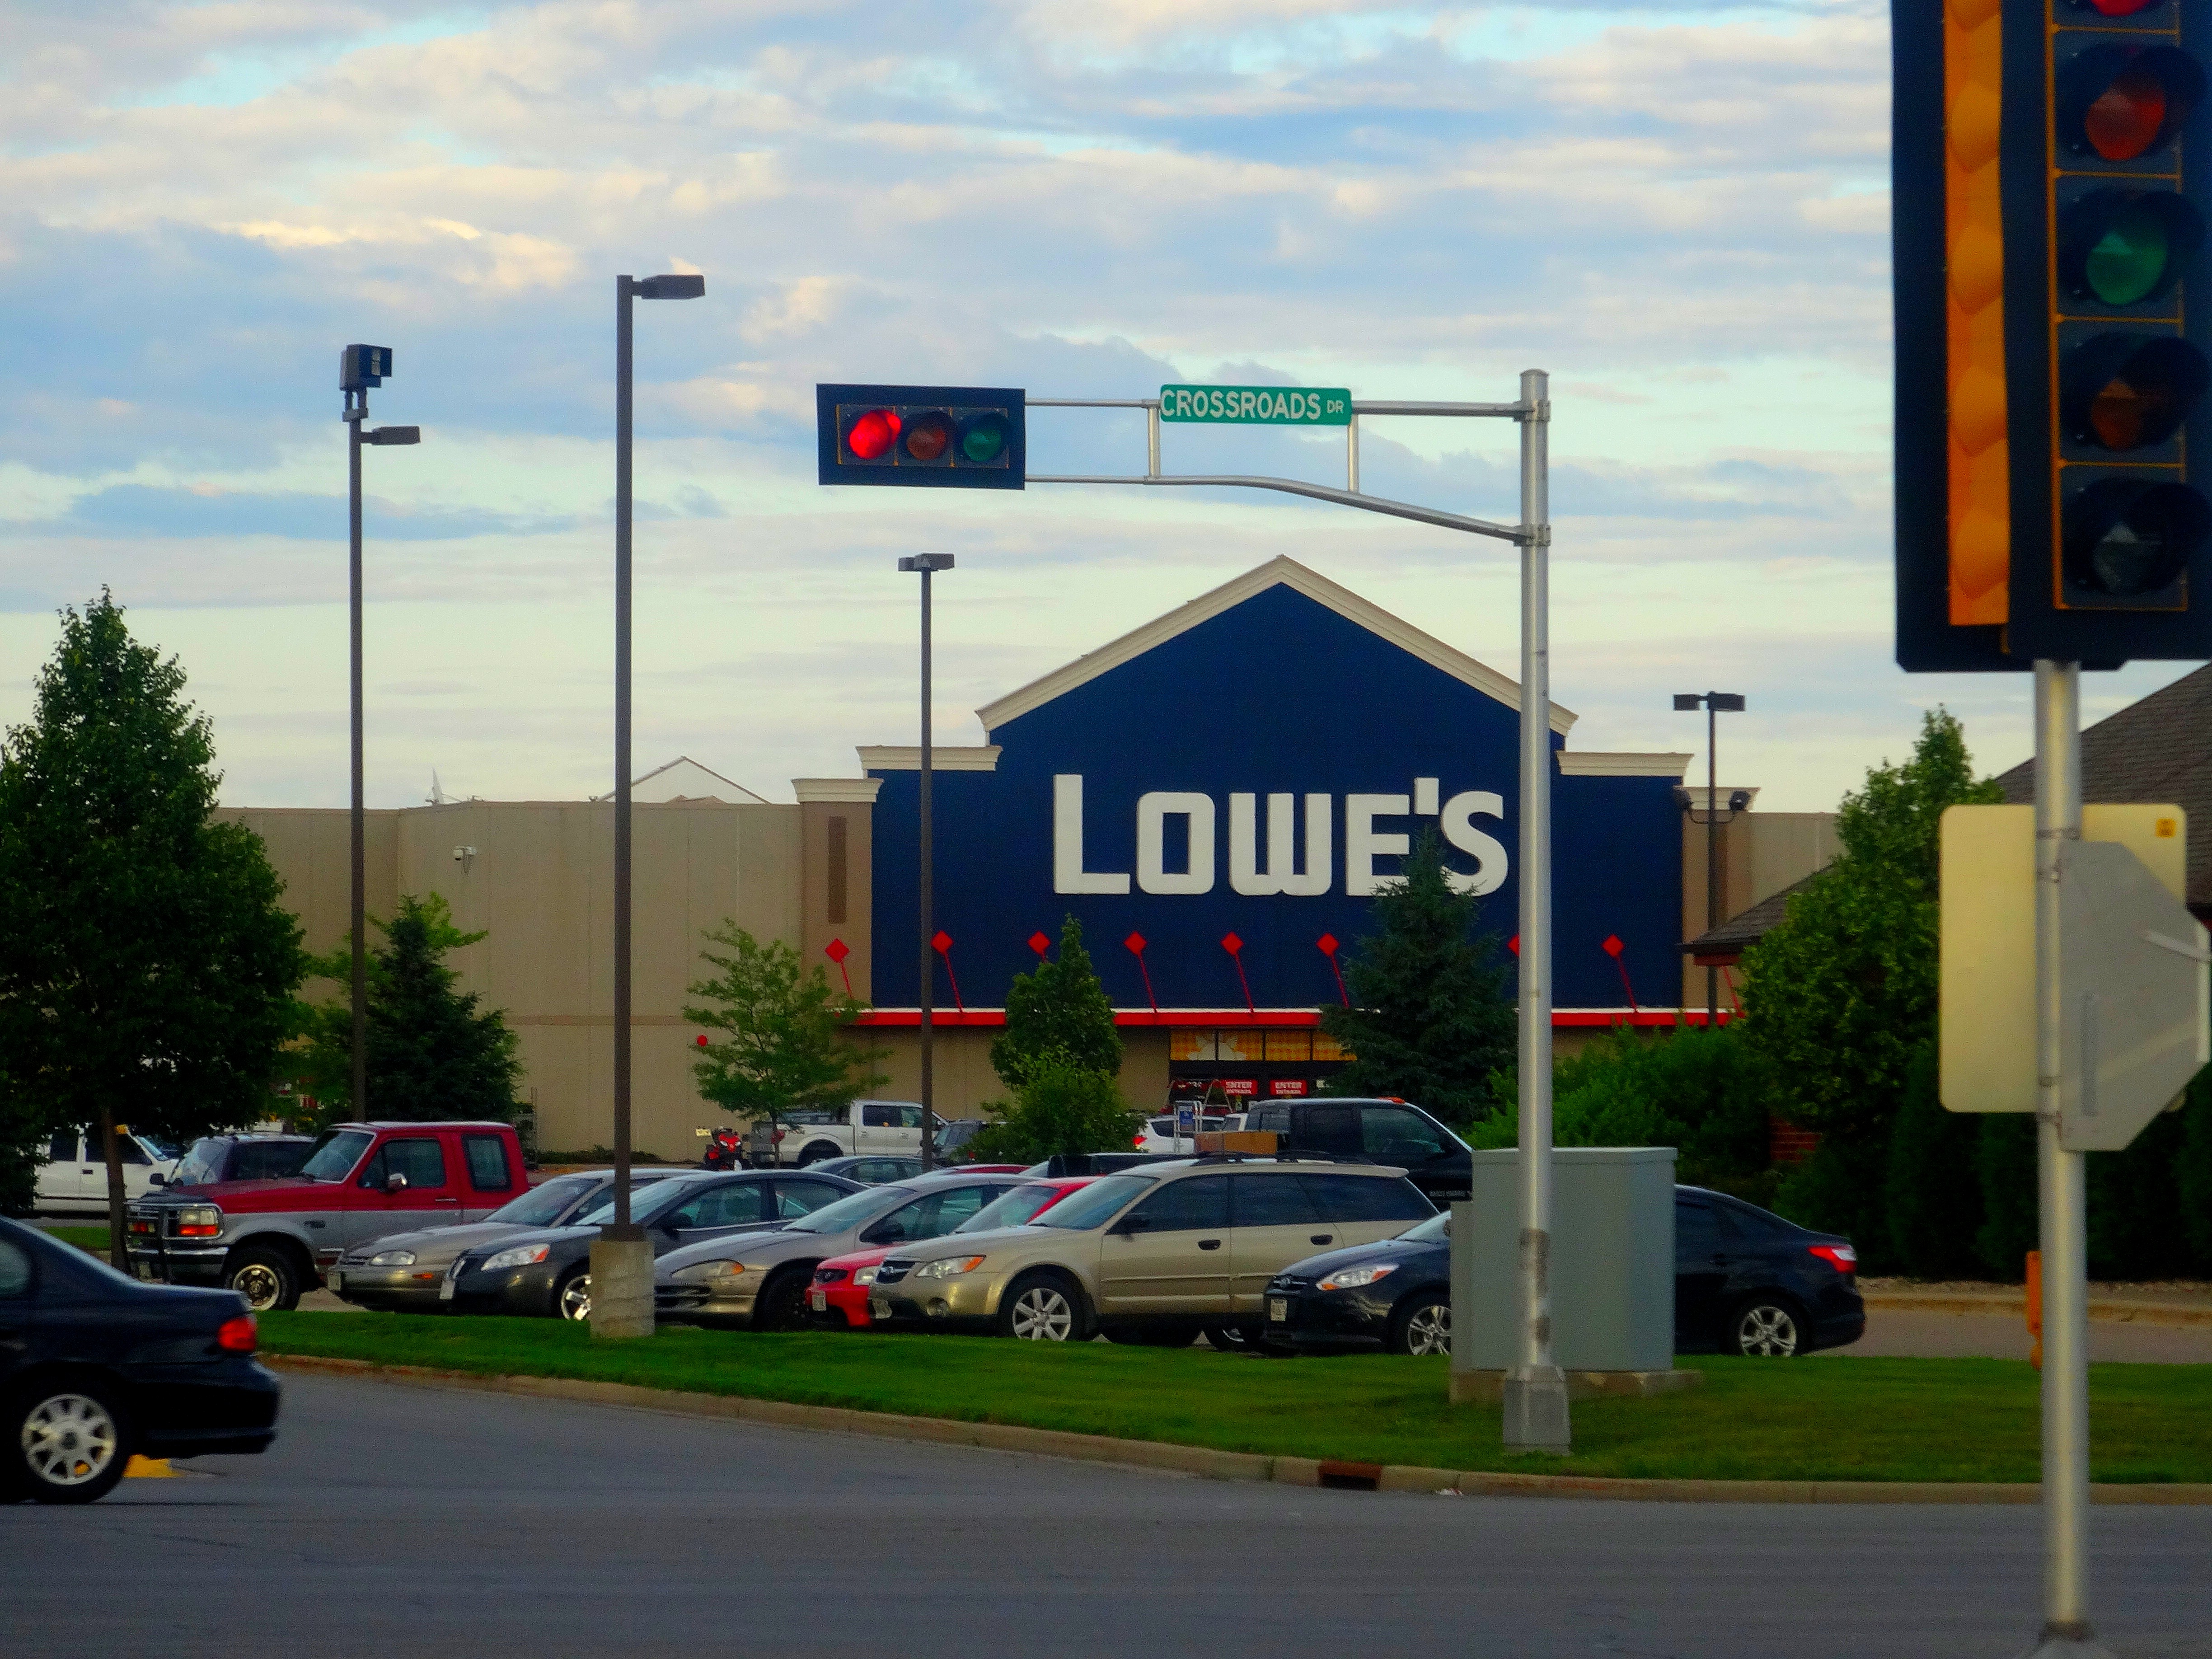 Lowes® Home Improvement Store - panoramio.jpg Lowes® Home Improvement Store Date Taken on 3 July 2014 Source https://www.panoramio.com/photo/109009892